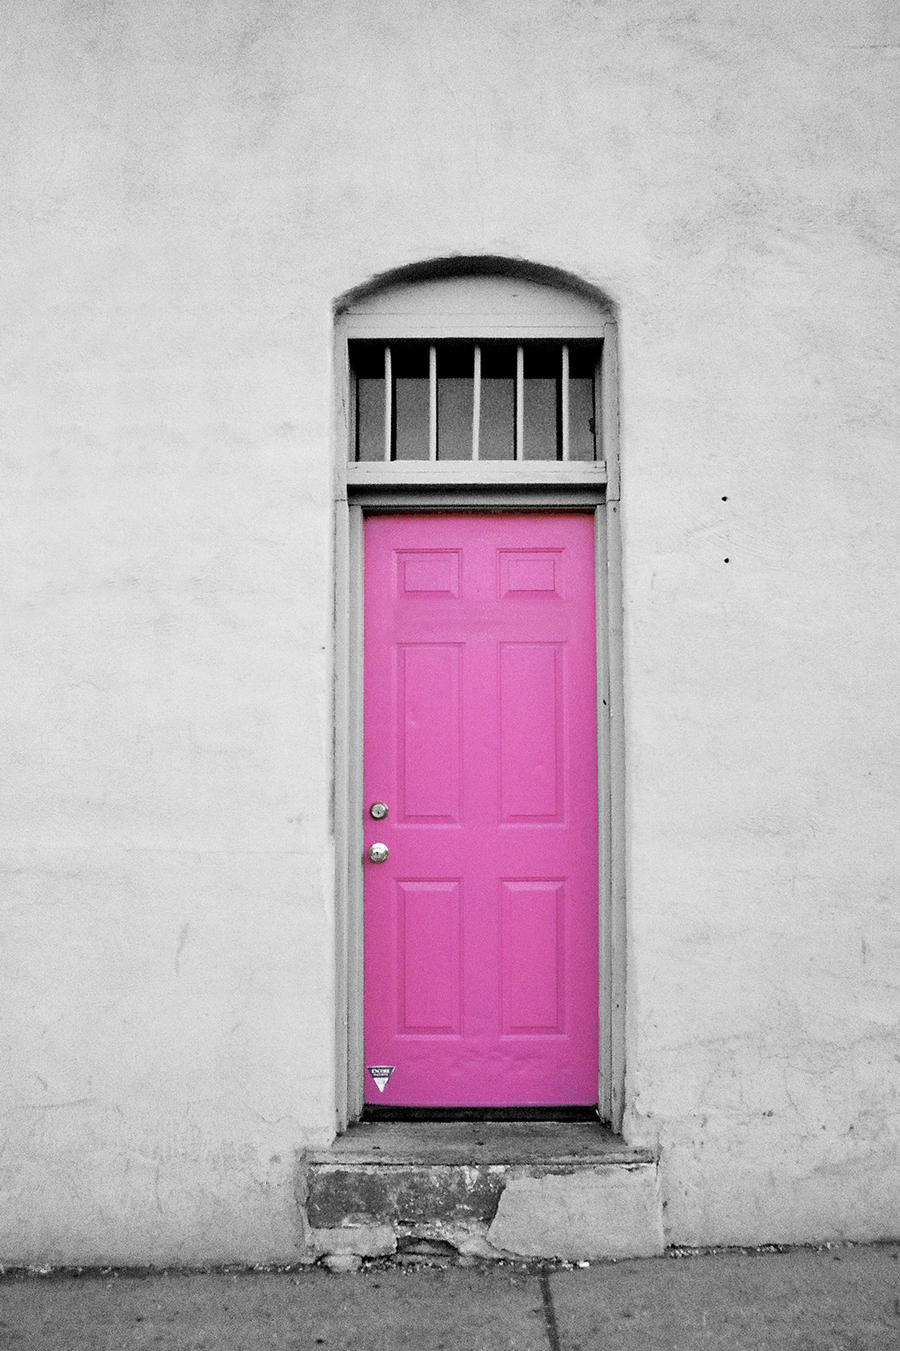 The Pink Door by AStaticPhotograph The Pink Door by AStaticPhotograph & The Pink Door by AStaticPhotograph on DeviantArt pezcame.com